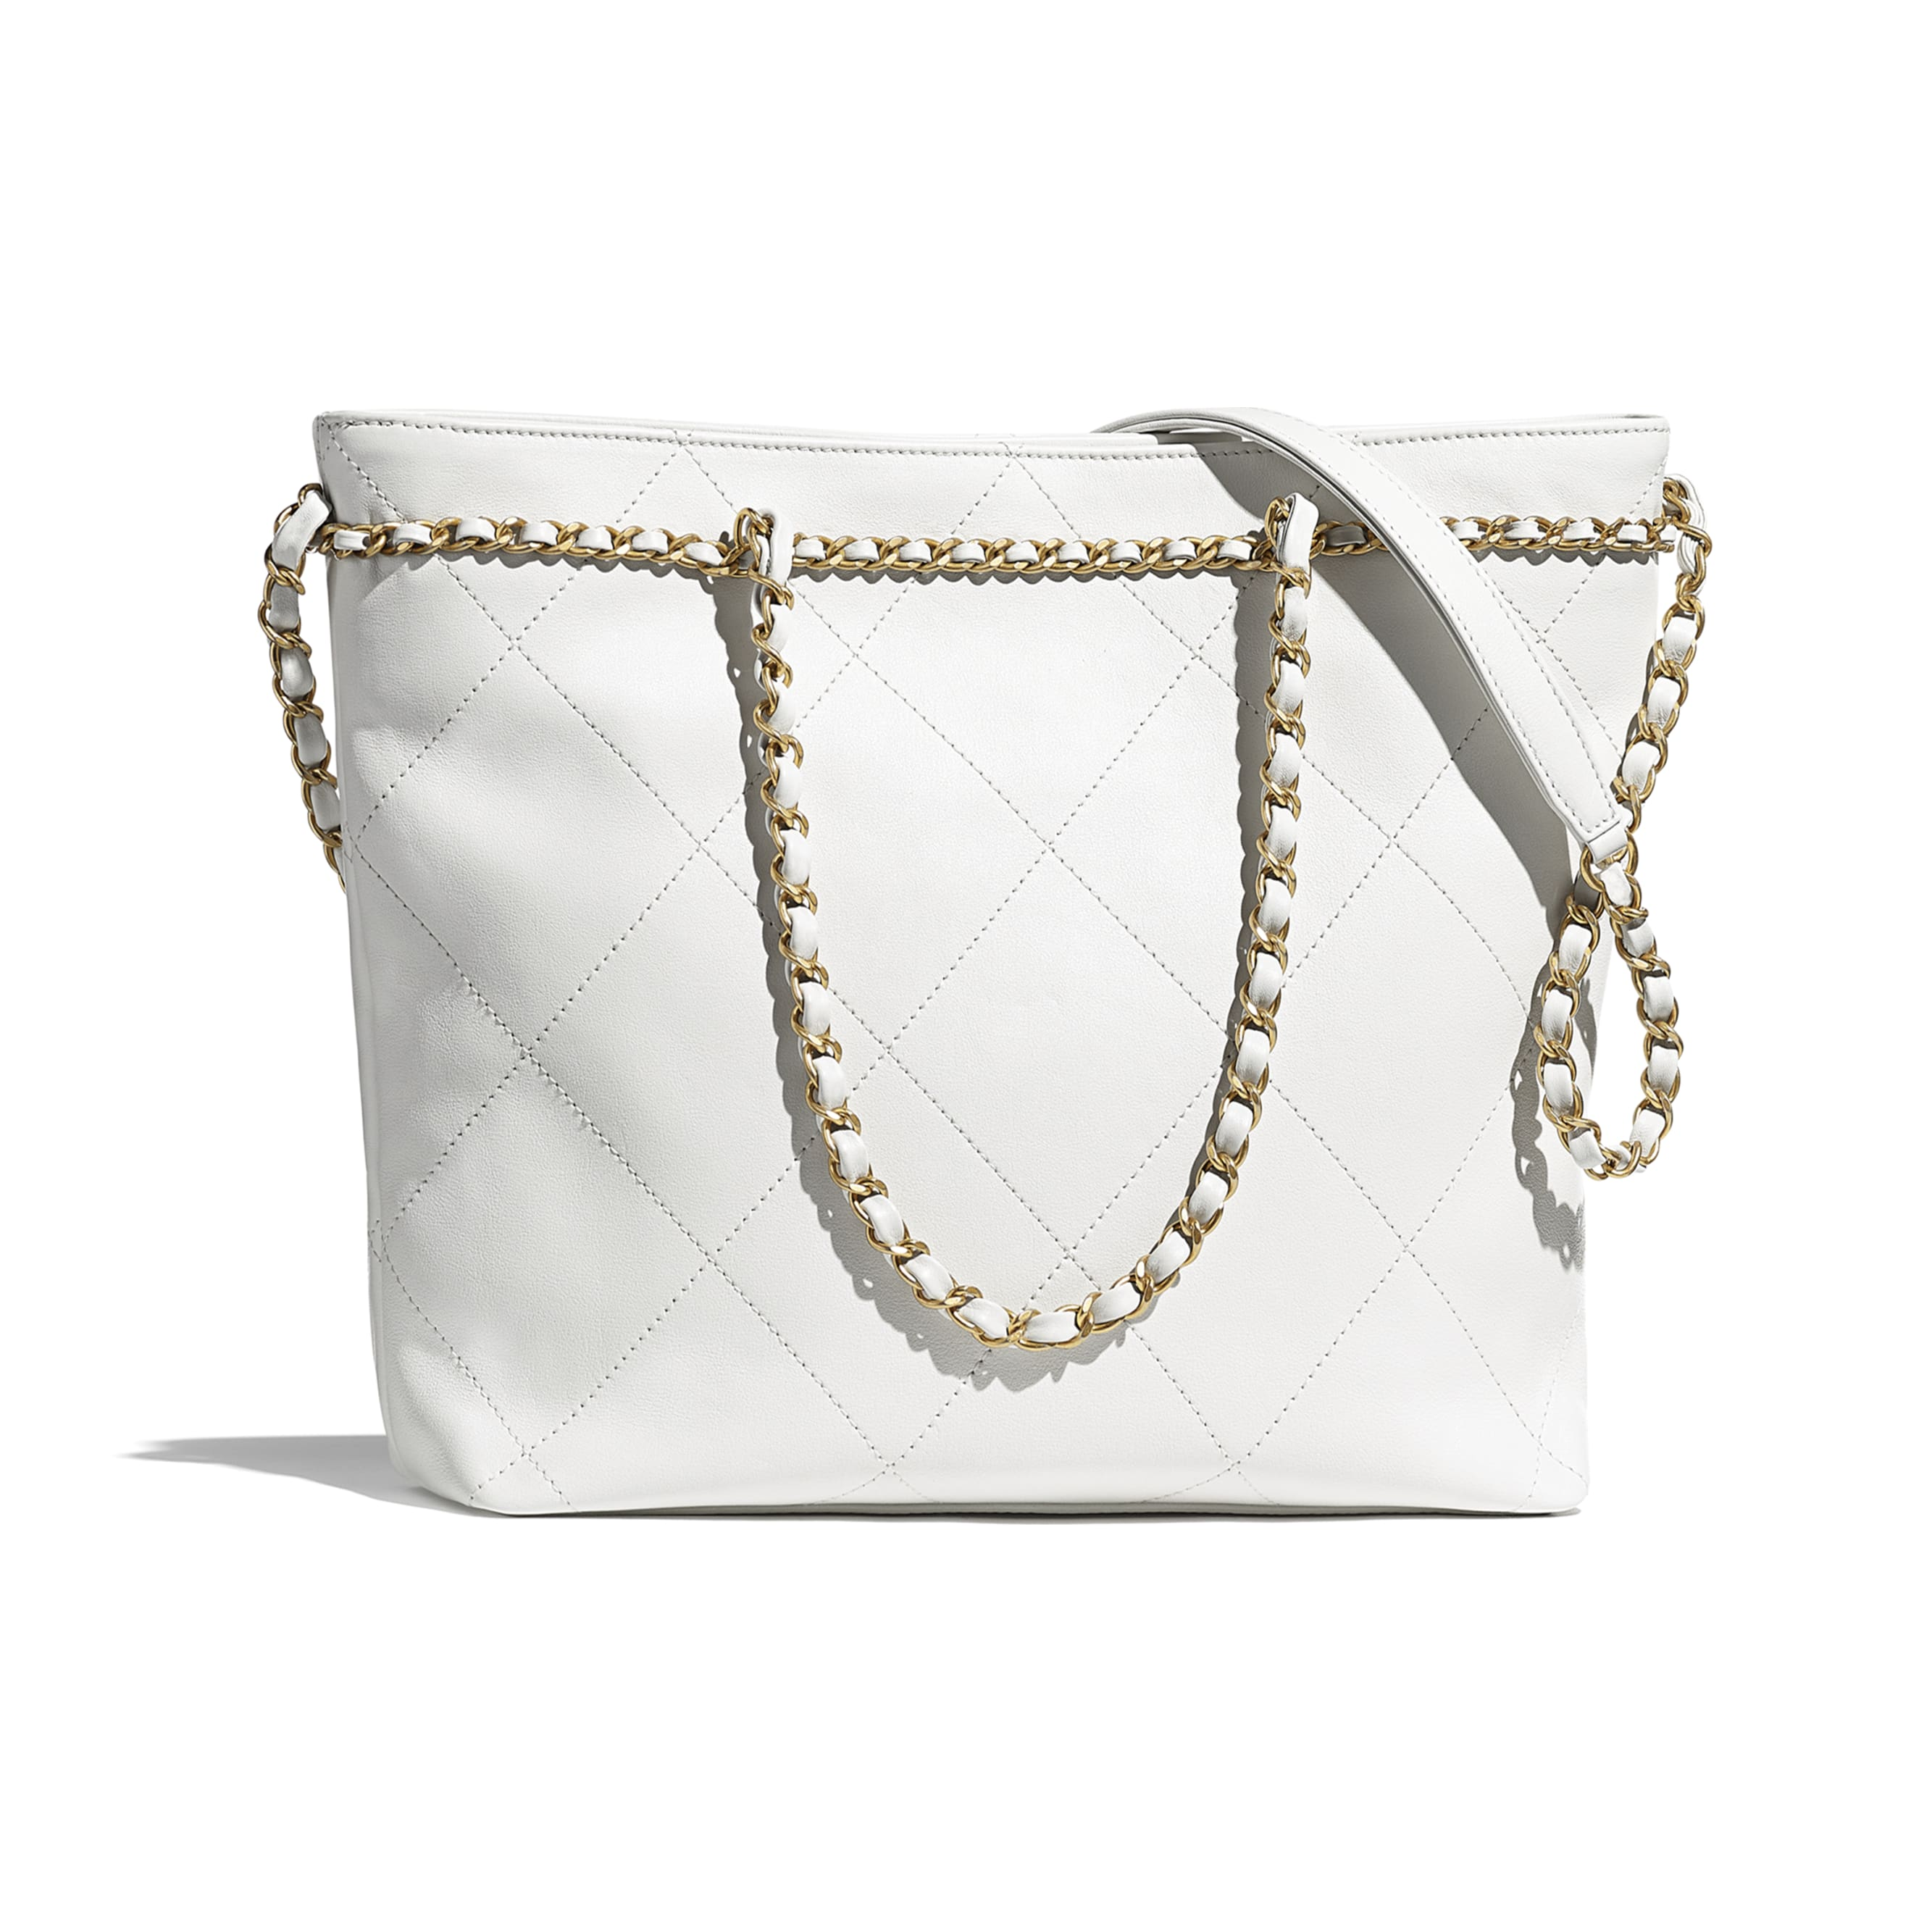 Small Tote - White - Calfskin & Gold-Tone Metal - CHANEL - Alternative view - see standard sized version